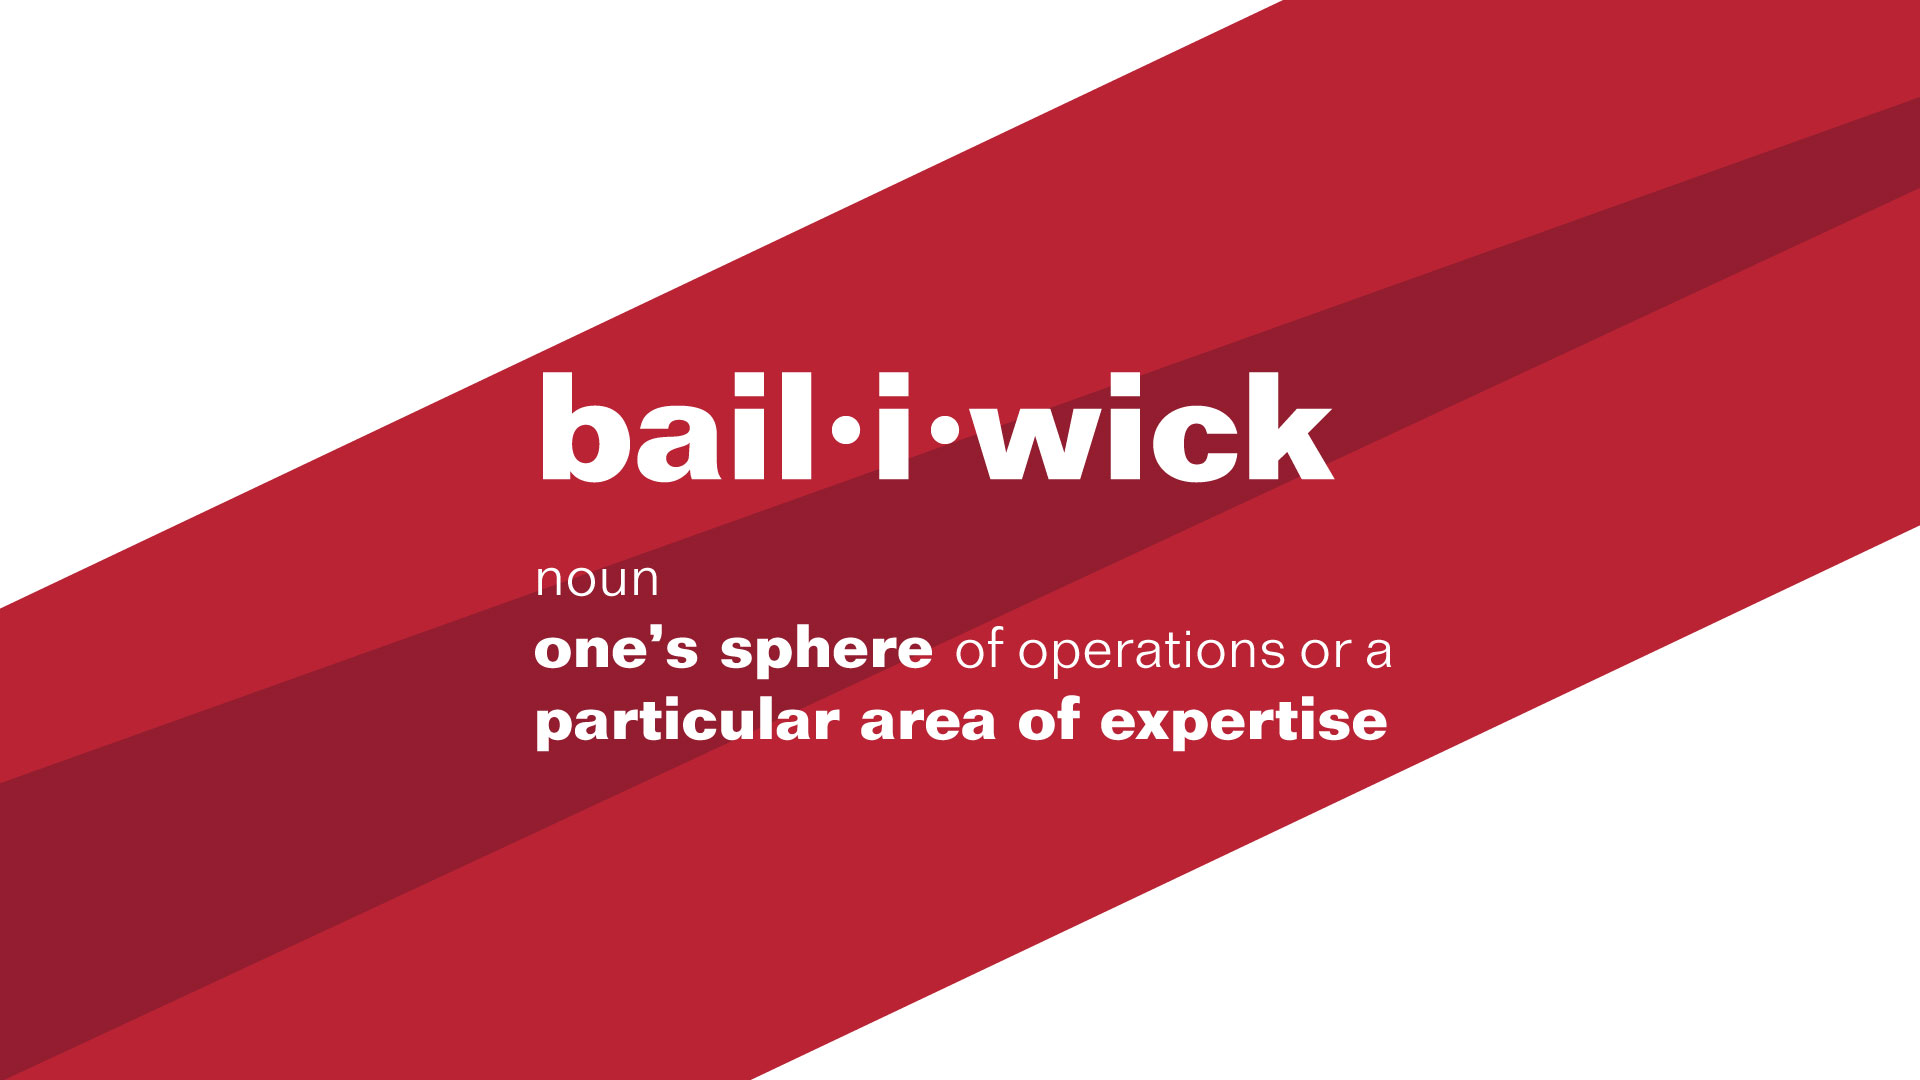 Bailiwick definition image